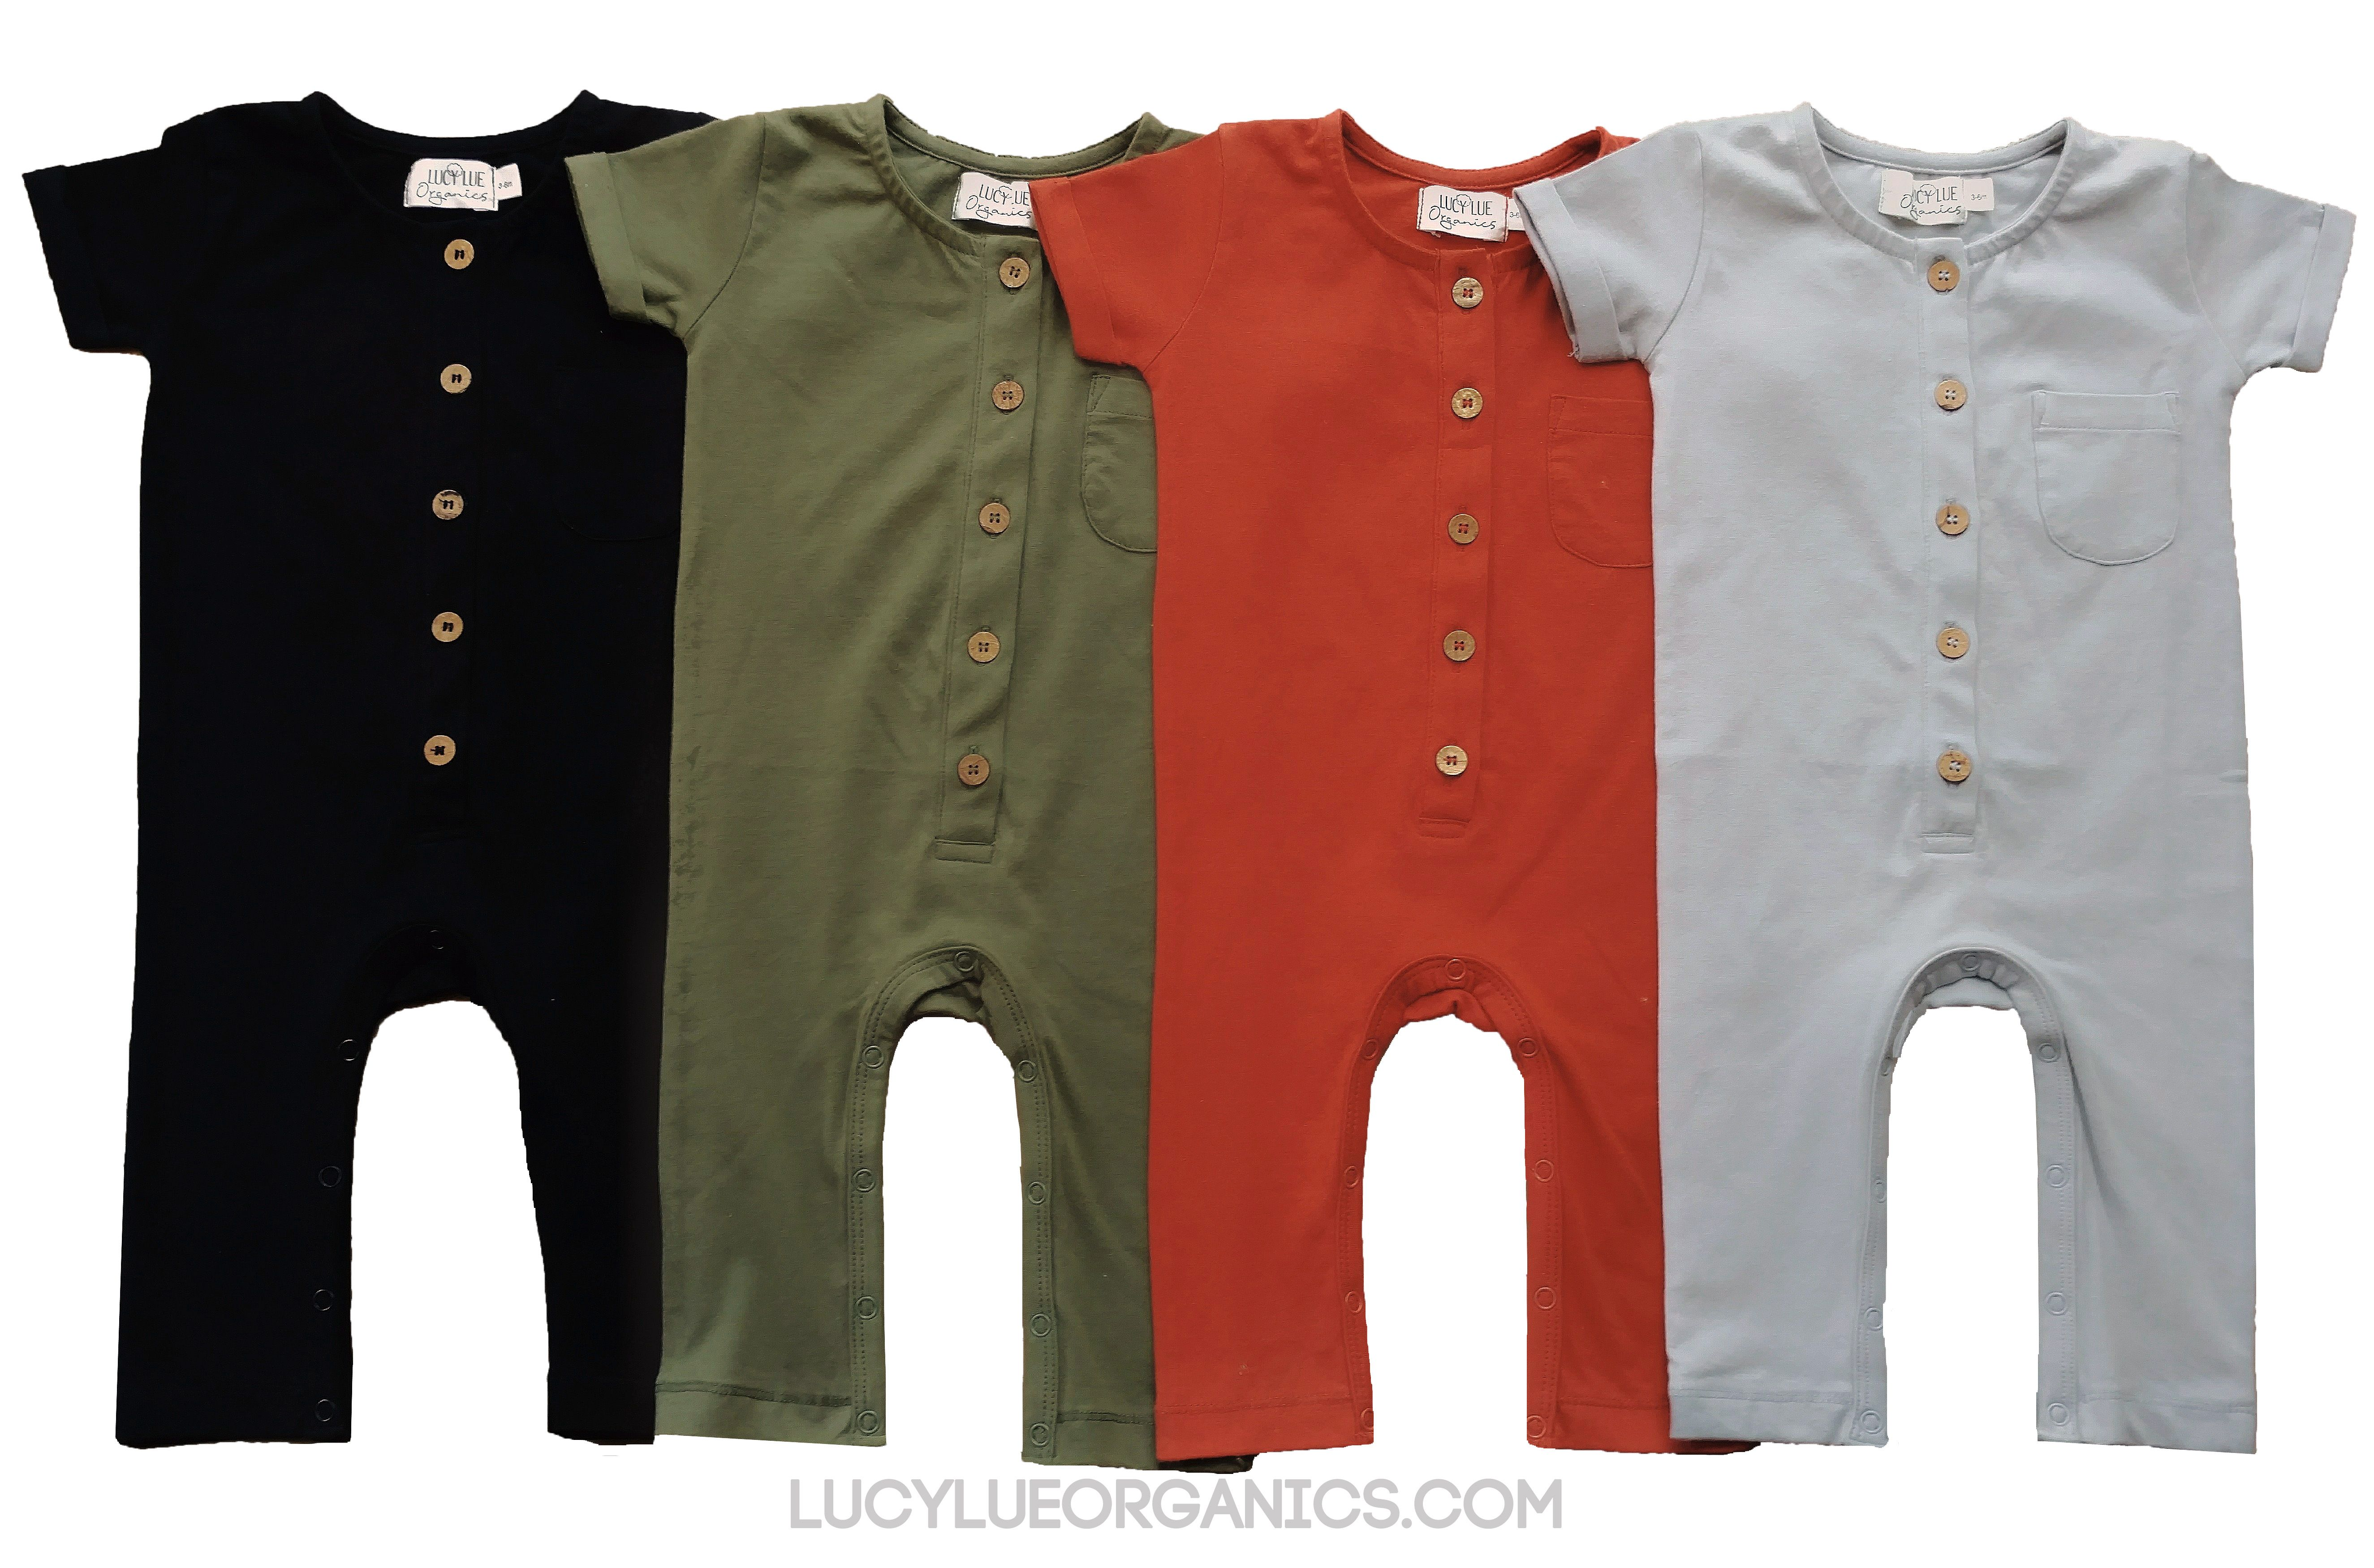 969aeb075 NEW STYLES BY LUCY LUE ORGANICS! Organic cotton baby rompers. Unisex  styles, neutral colors. For the best in modern organic baby clothes, ...